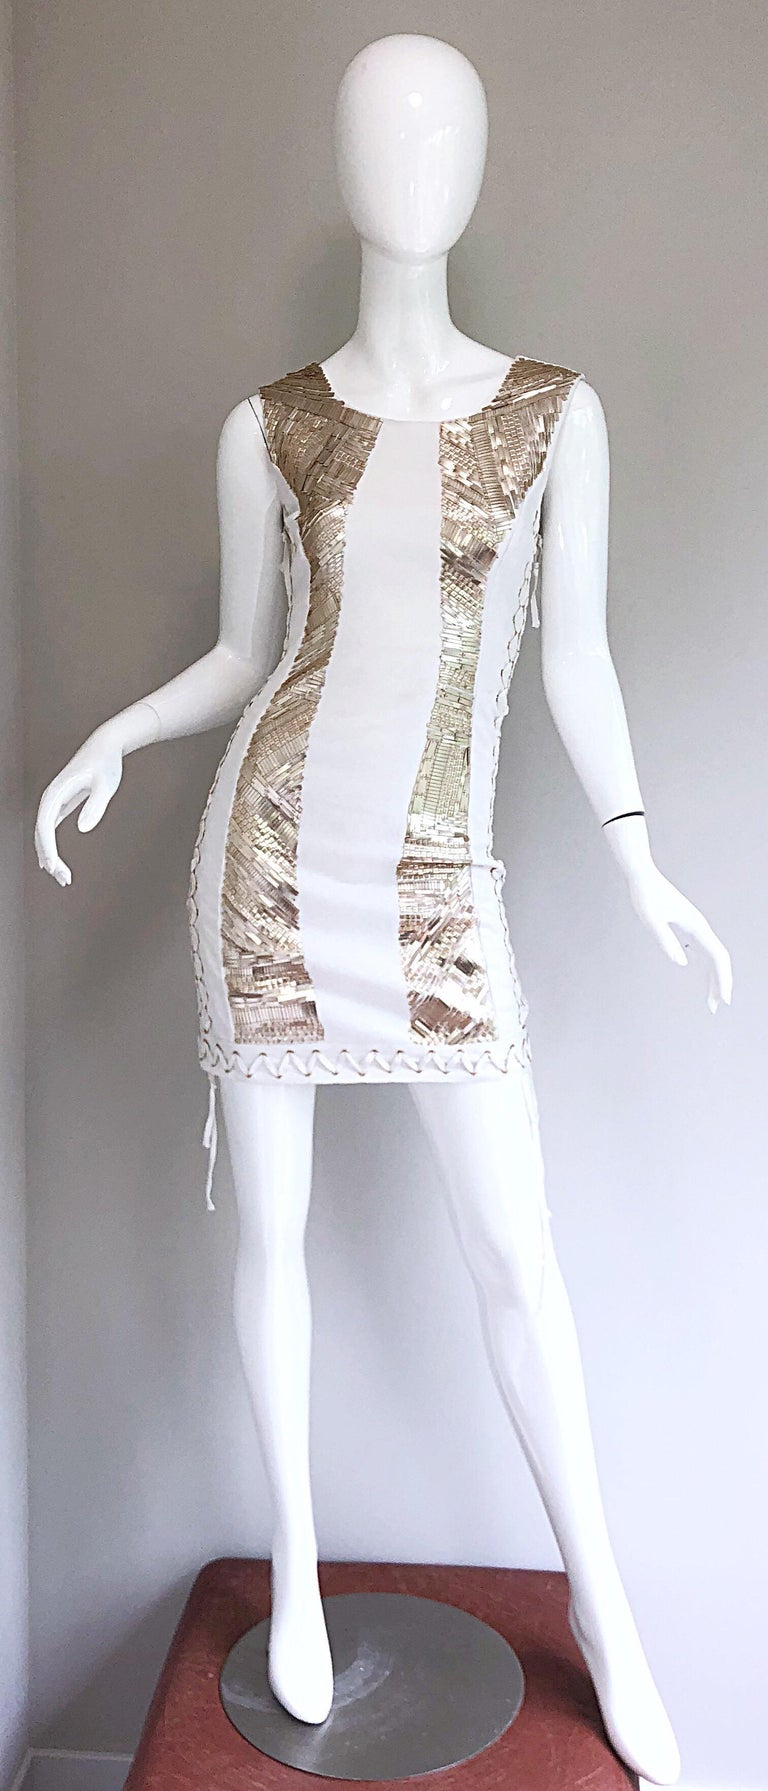 Pierre Balmain New w/ Tags White + Gold Sequined Lace Up Sleeveless Mini Dress For Sale 8